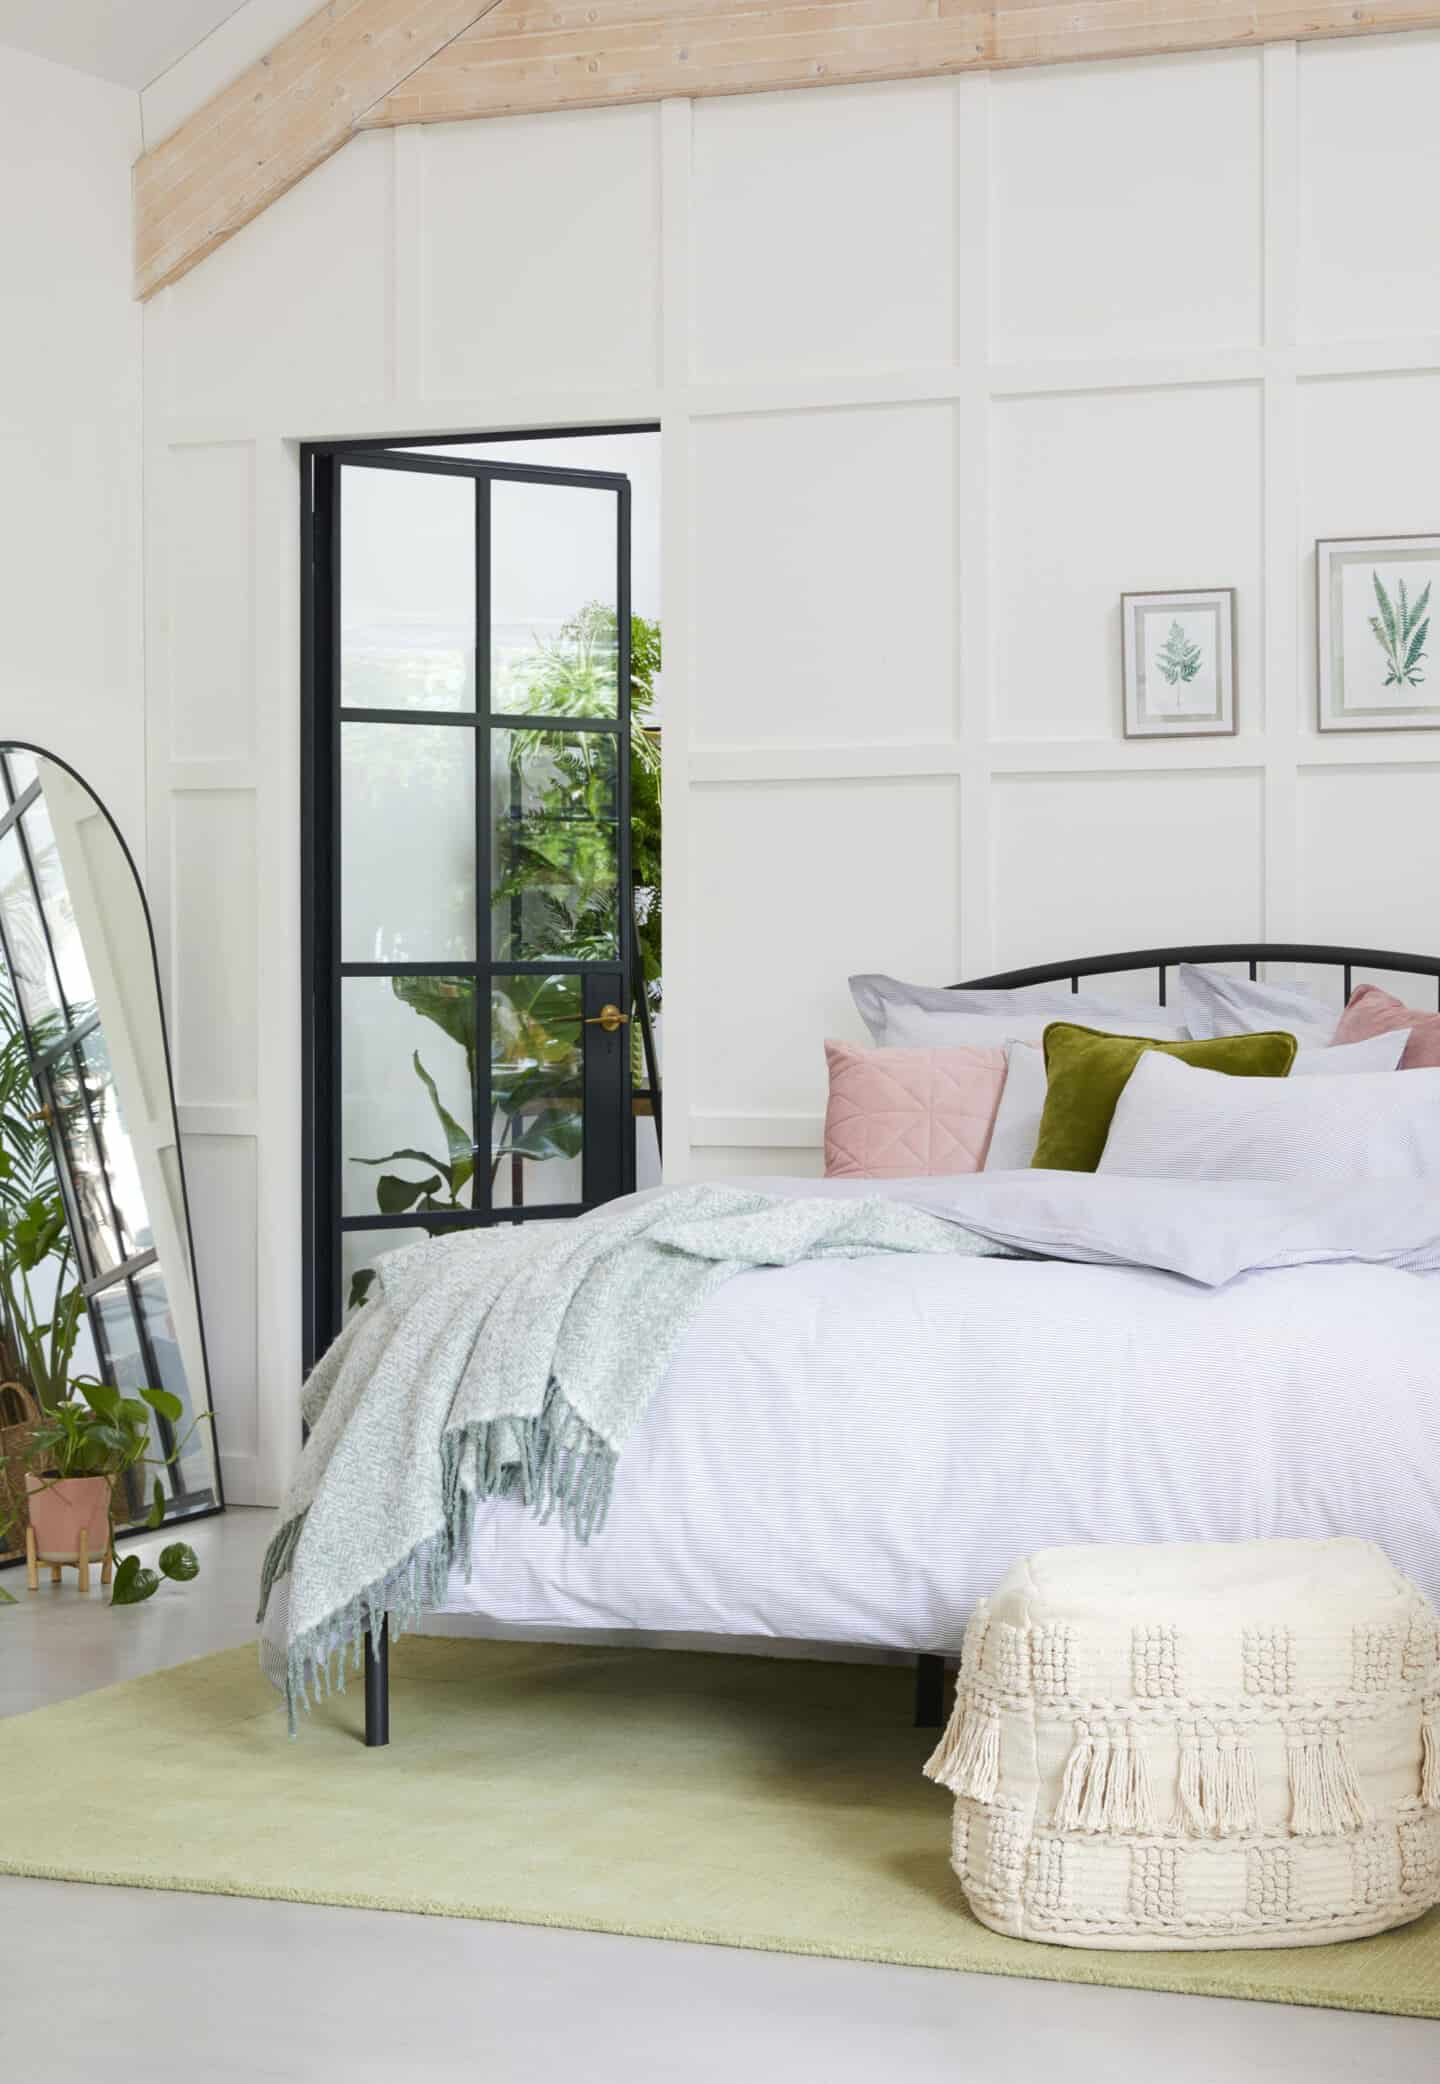 Sancturary is a SS20 interiors trend by Dunelm that features nature in interiors. This bedroom features lots of tactile textures, natural materials and plants.